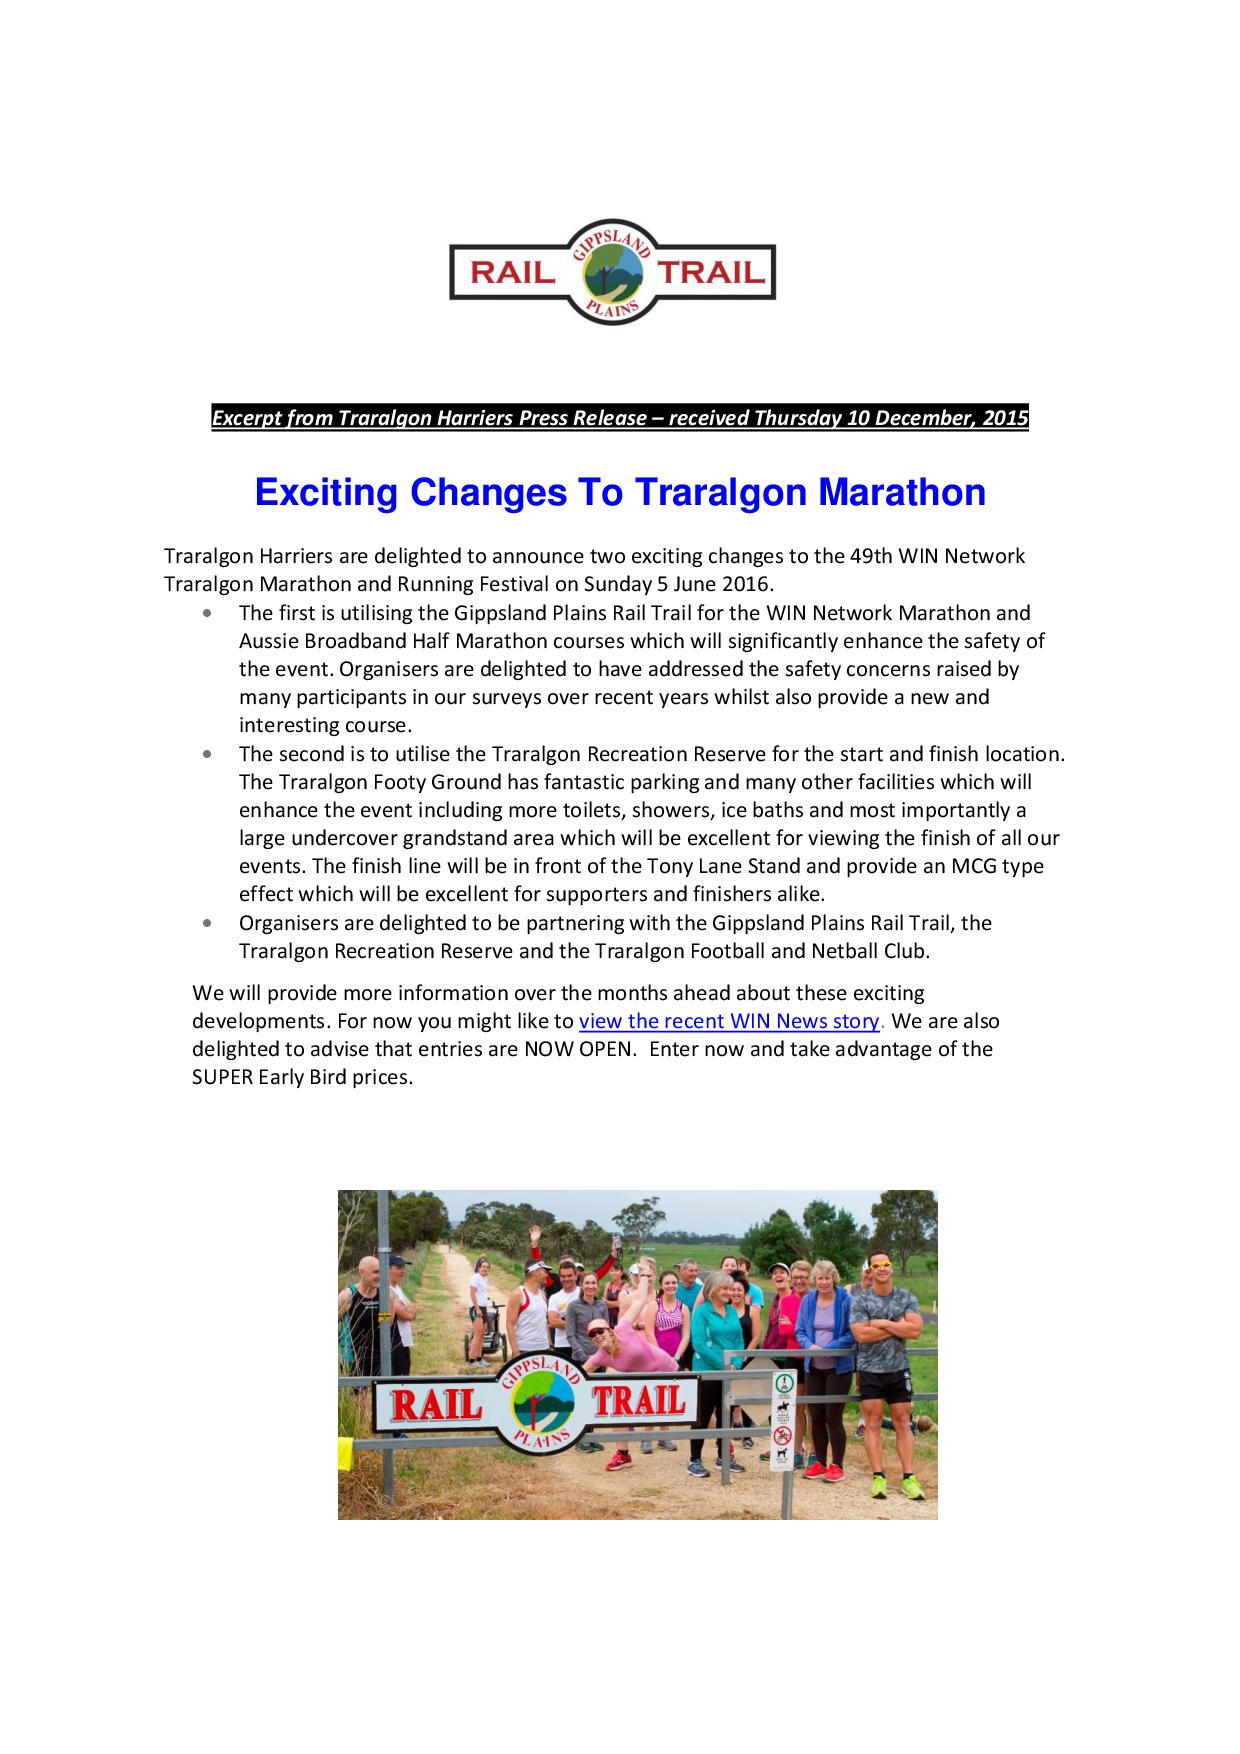 Excerpt from Traralgon Harriers Press Release – 10 December, 2015